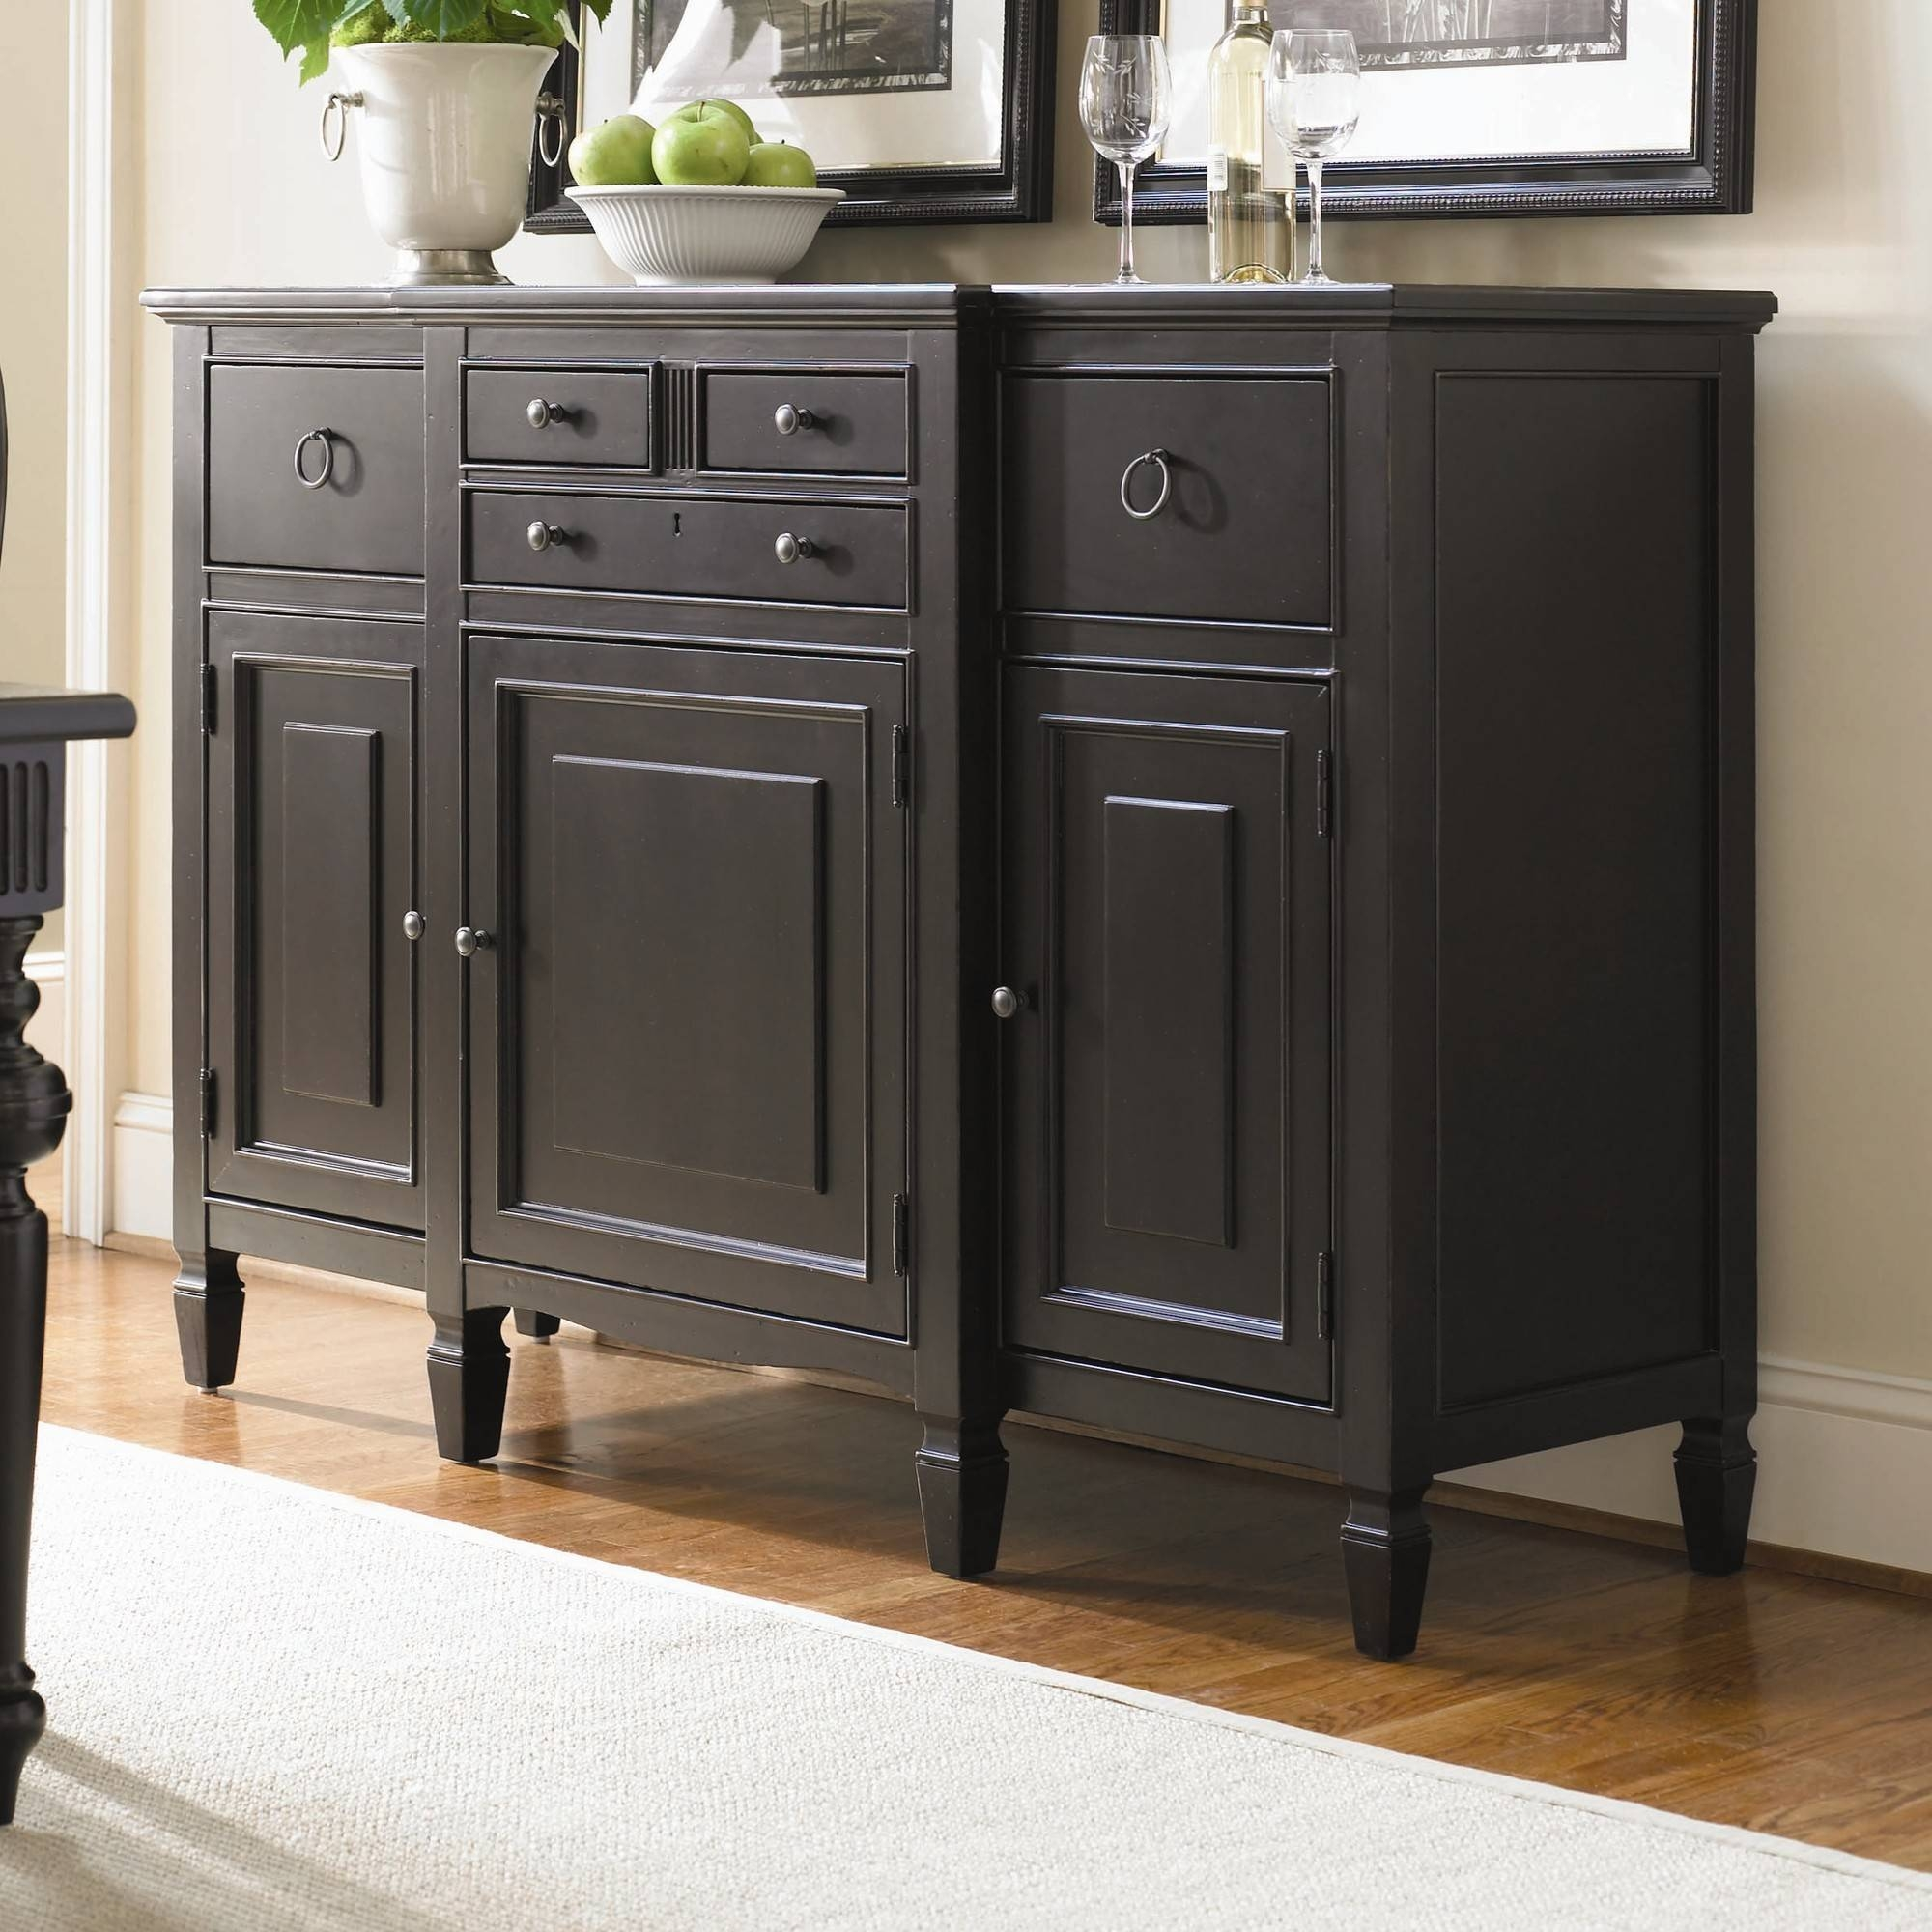 Dining Room Buffet Cabinet Sideboards Buffets Storage Servers 17 throughout Small Dining Room Sideboards (Image 7 of 15)